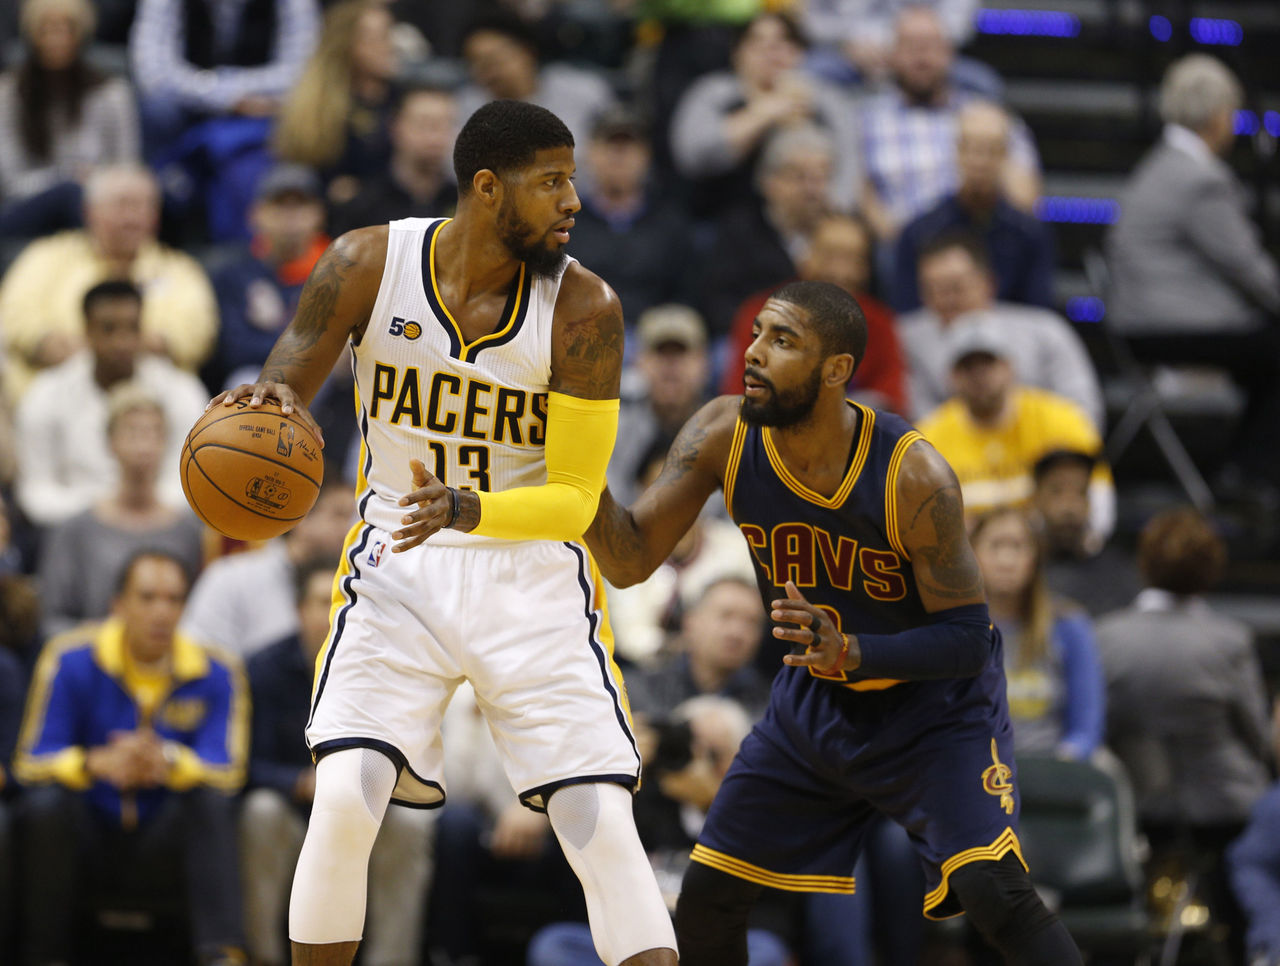 Cropped_2017-02-09t012345z_323093142_nocid_rtrmadp_3_nba-cleveland-cavaliers-at-indiana-pacers